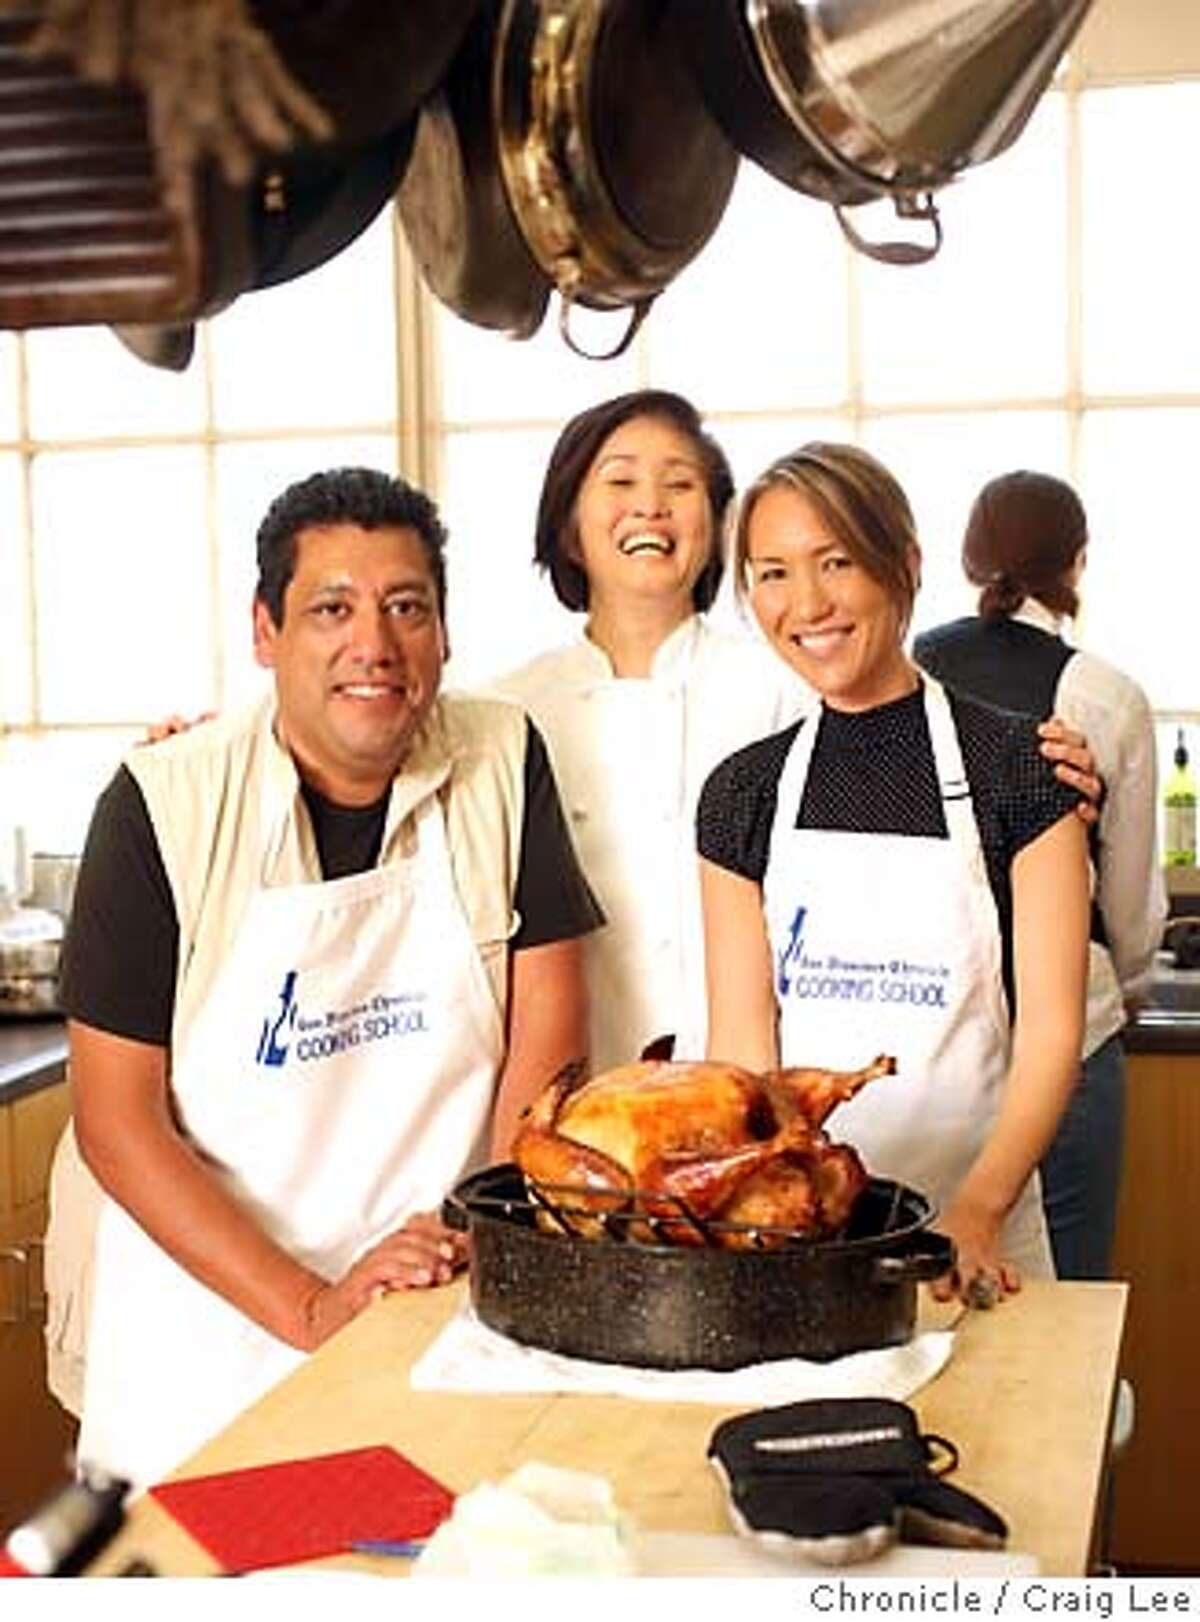 TURKEYCAMP15_385_cl.JPG Turkey training camp at the San Francisco Chronicle Food kitchen. Olivia Wu and Tara Duggan teach five people how to make a Thanksgiving dinner. Photo left-right: Art Gutierrez, Olivia Wu, and Tara Monar with their freshly roasted turkey from the oven. photo by Craig Lee / The Chronicle Ran on: 11-12-2006 Ran on: 11-15-2006 Art Gutierrez (left) and Tara Molnar show off their freshly roasted turkey that Olivia Wu (center) taught them how to prepare at The Chronicles Turkey Training Camp.